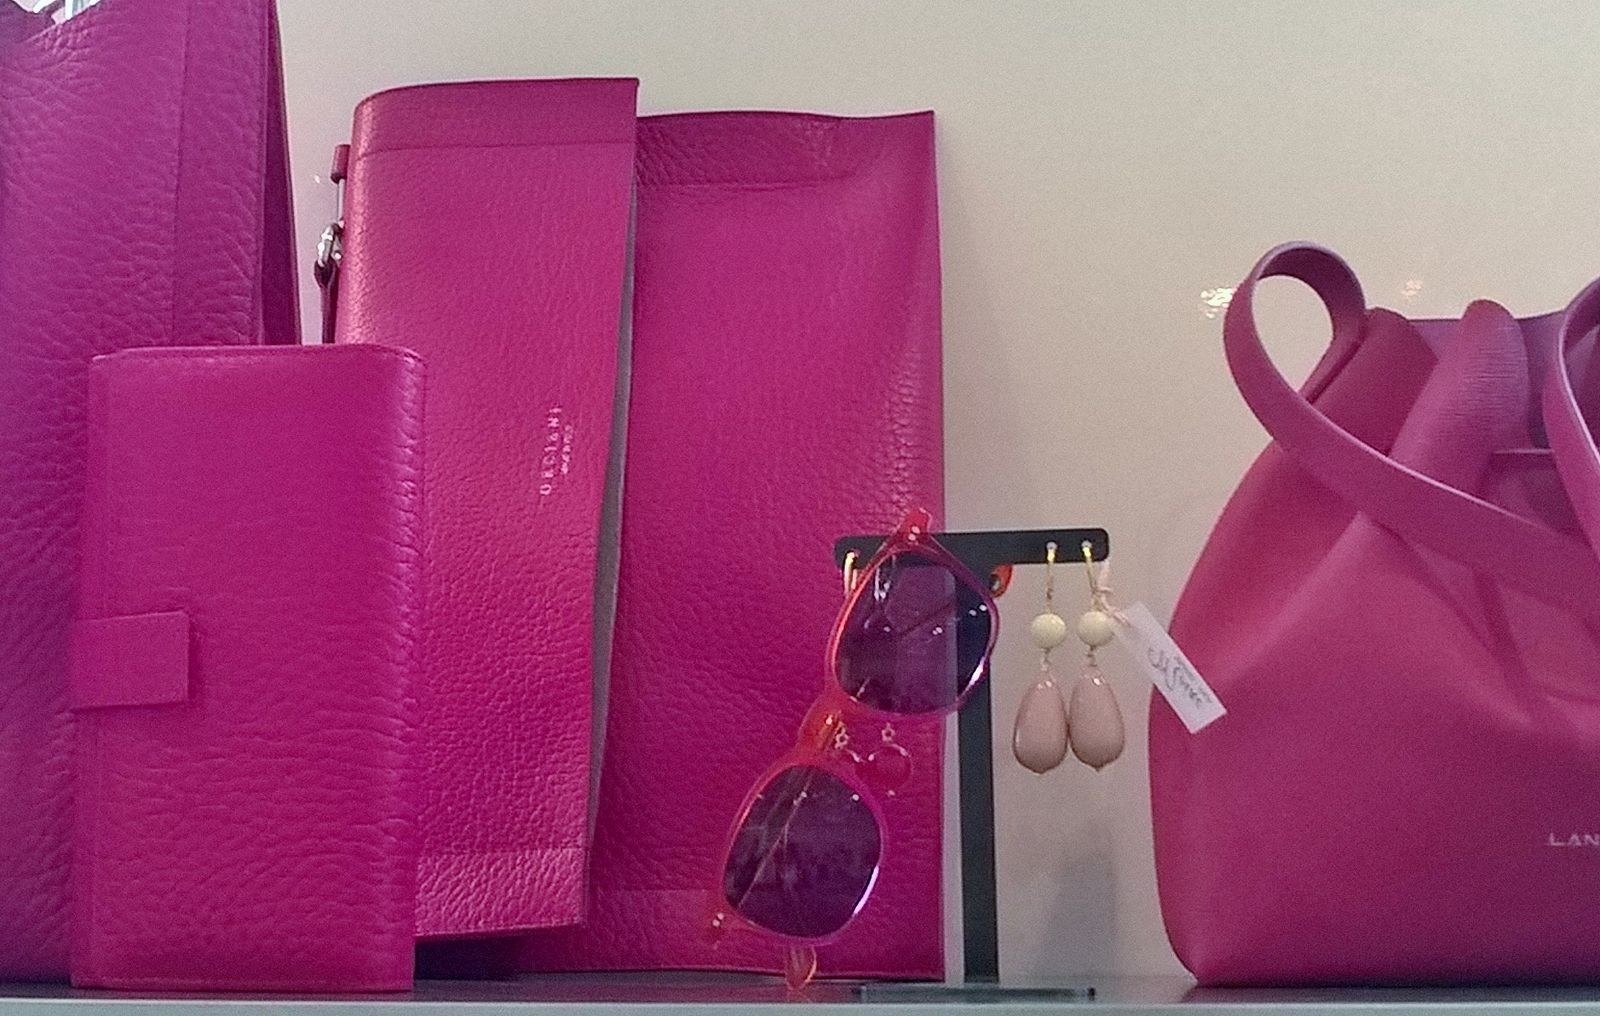 Glicine! #leaboutique #pink #purple #milano